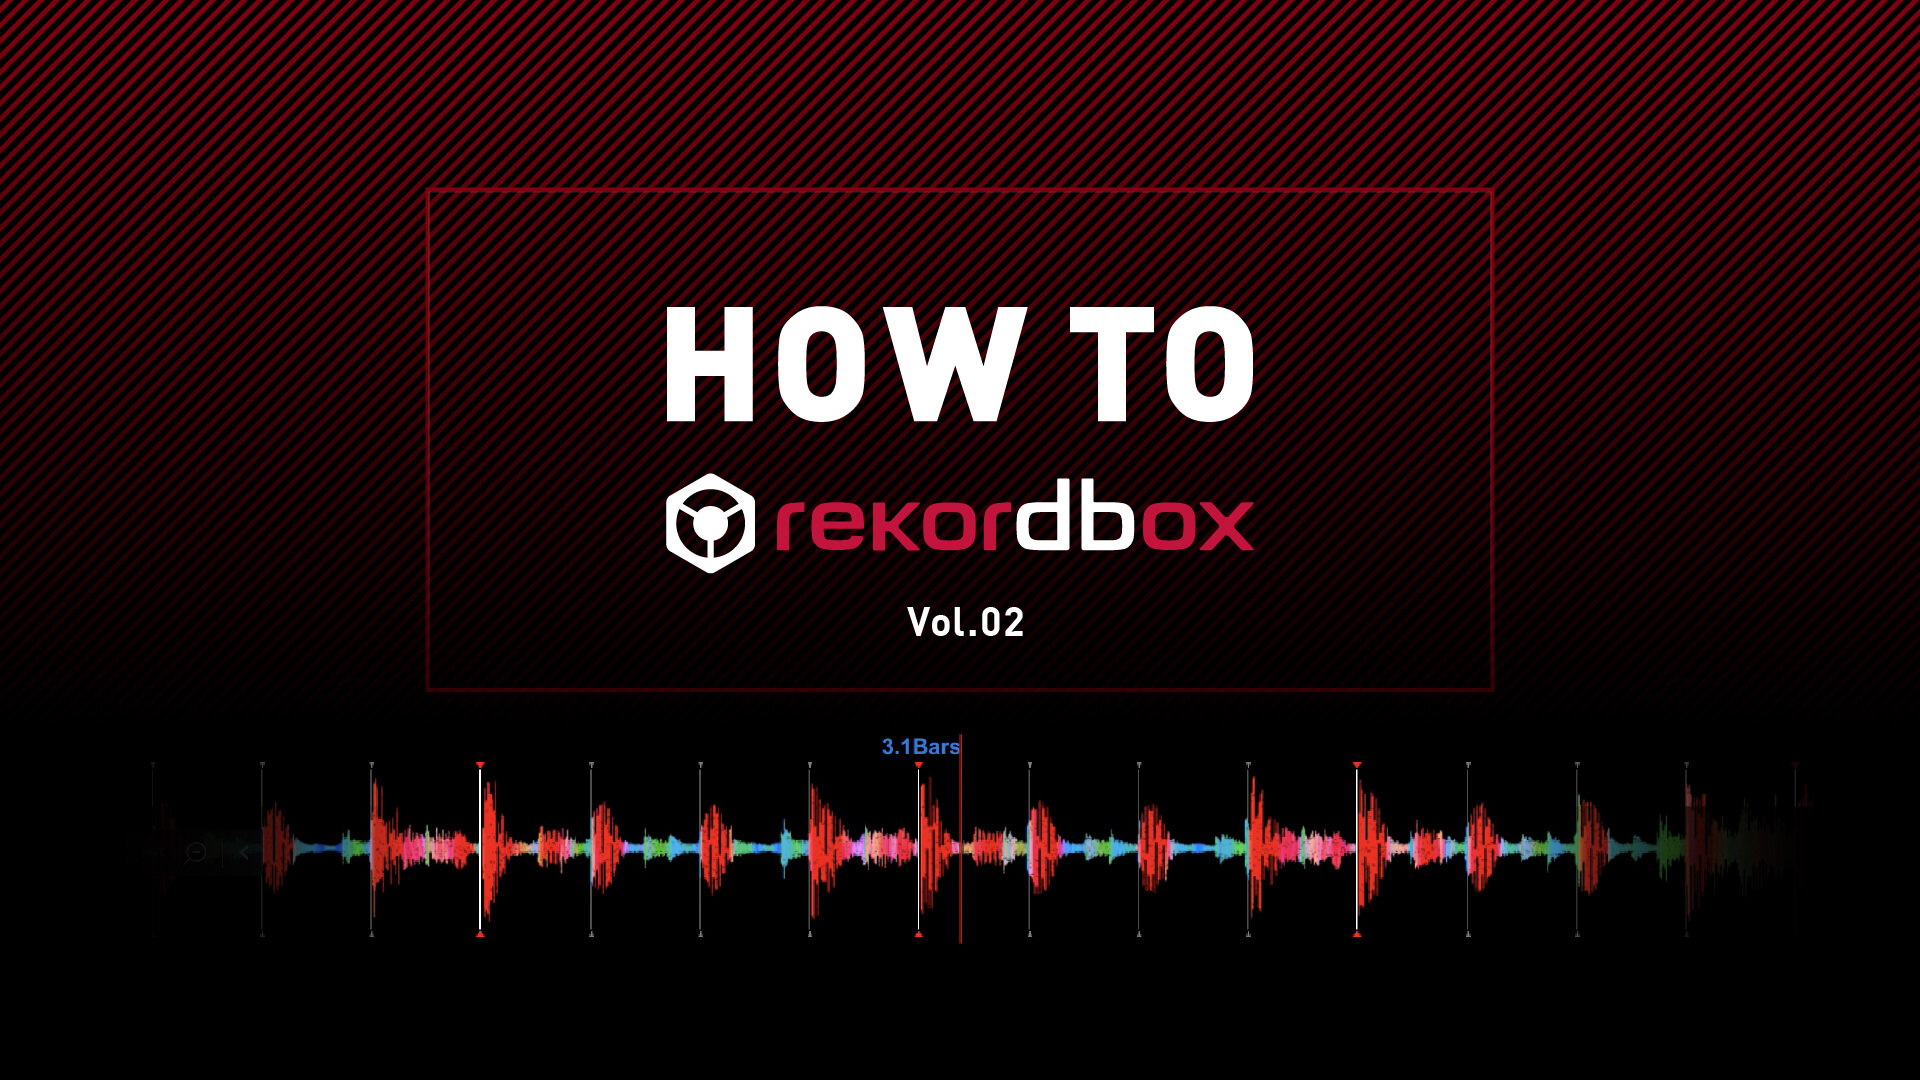 HOW TO rekordbox vol.2